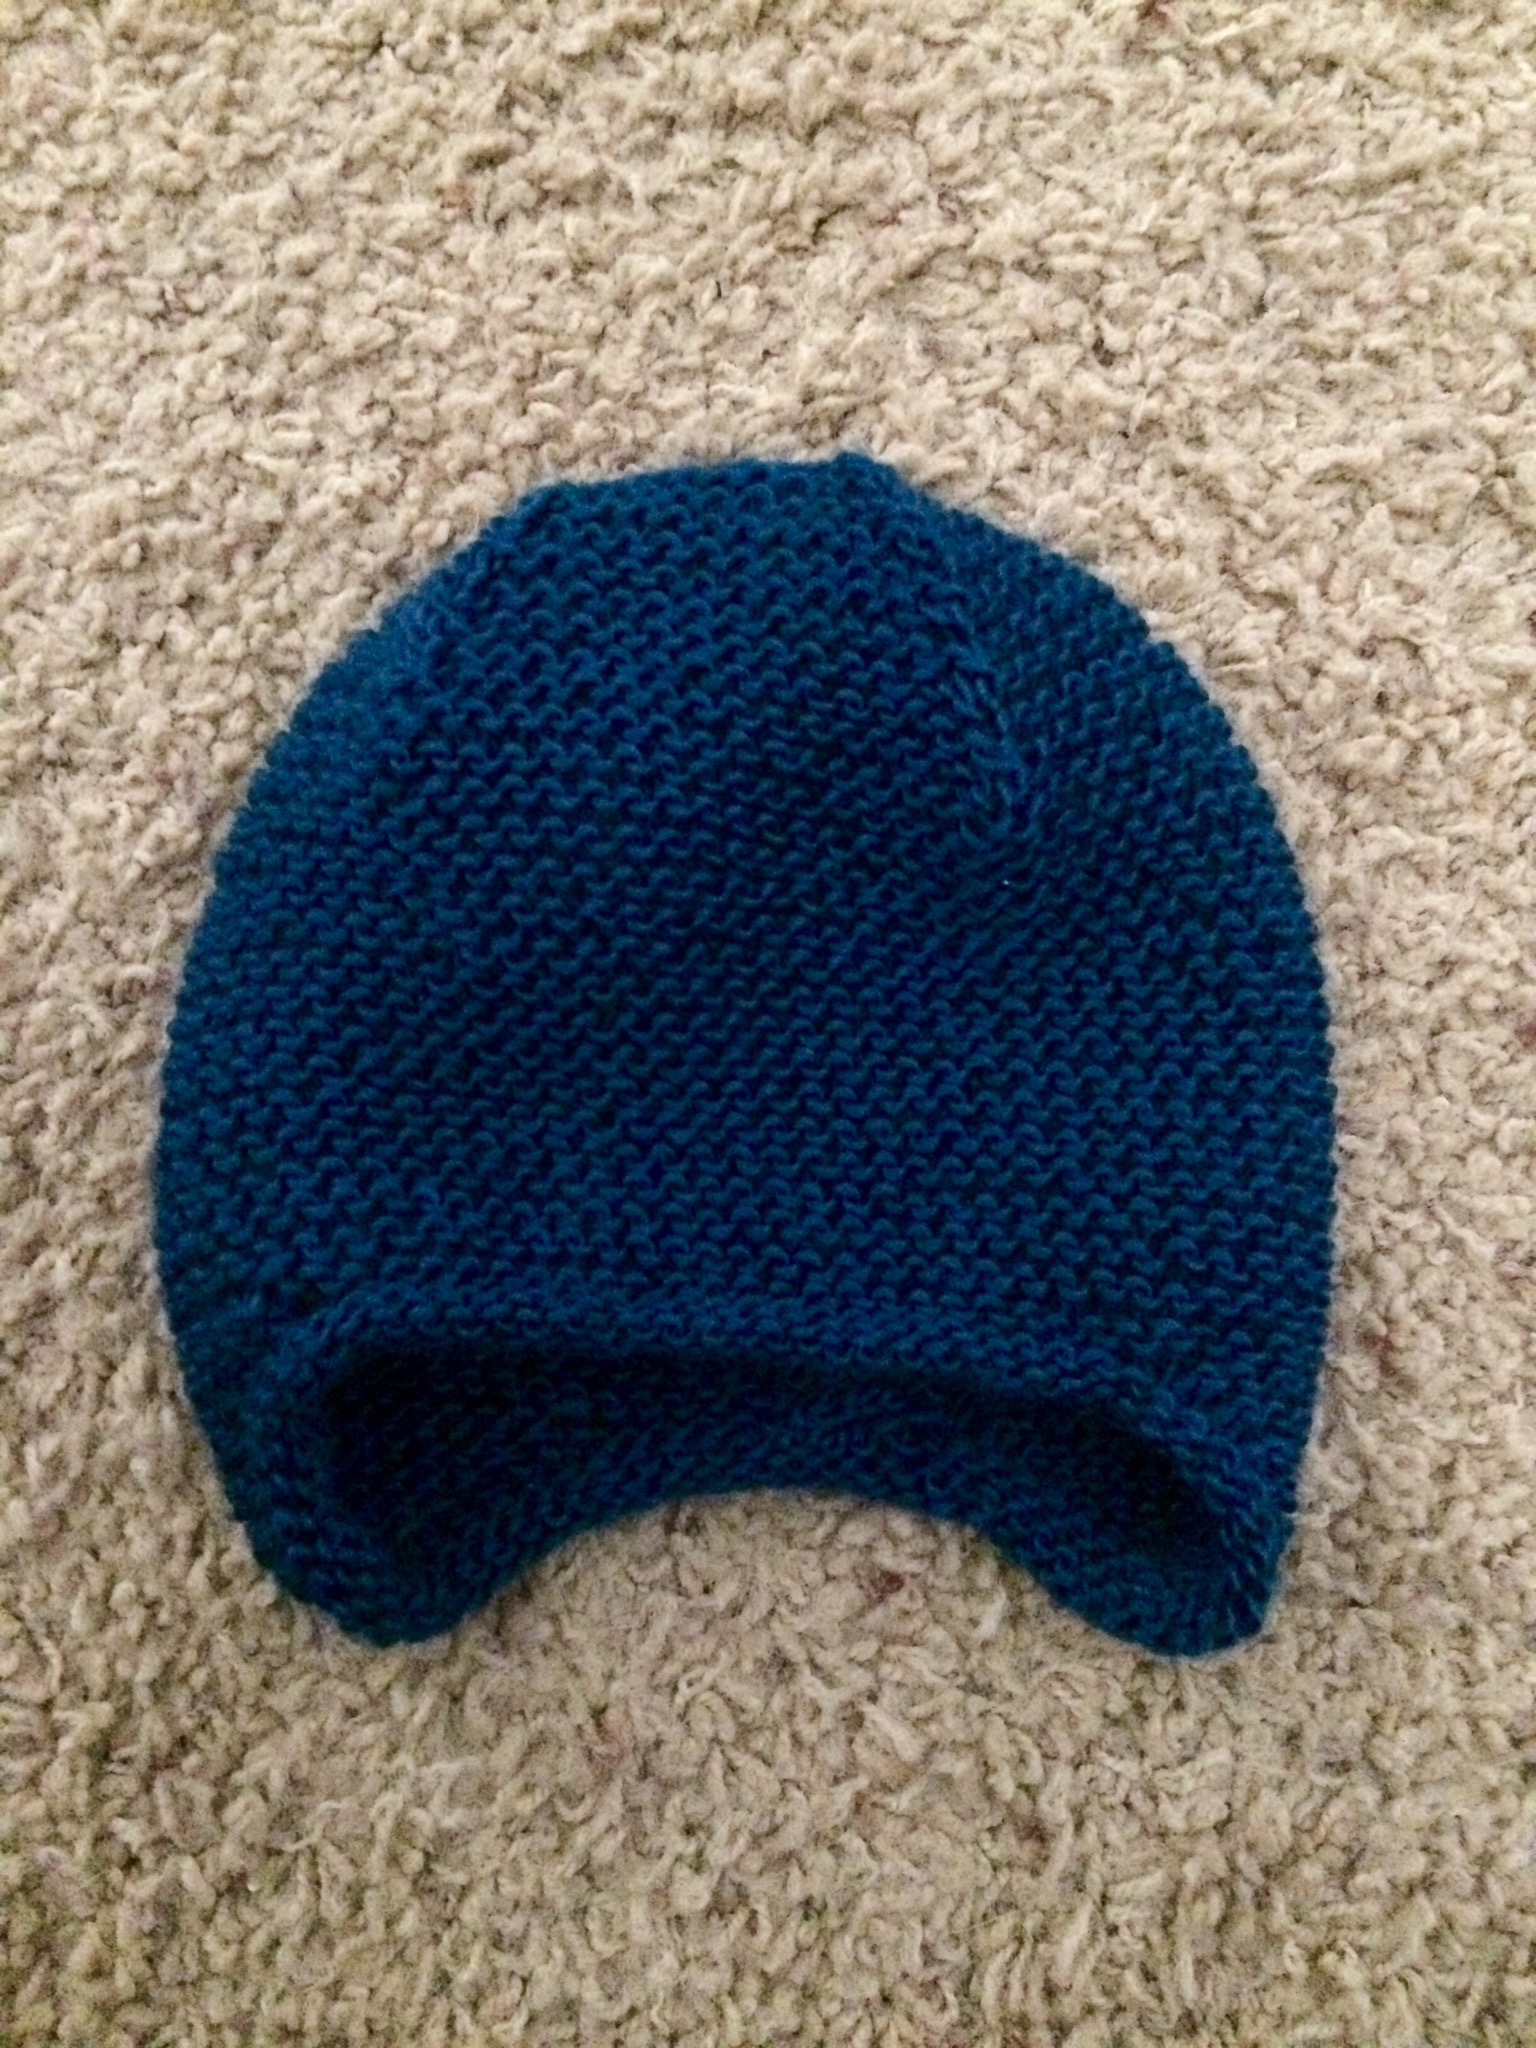 ... this time with a number of total stitches between the infant and  toddler sizes AND the correct needles! This first hat really is just ... c073d318208